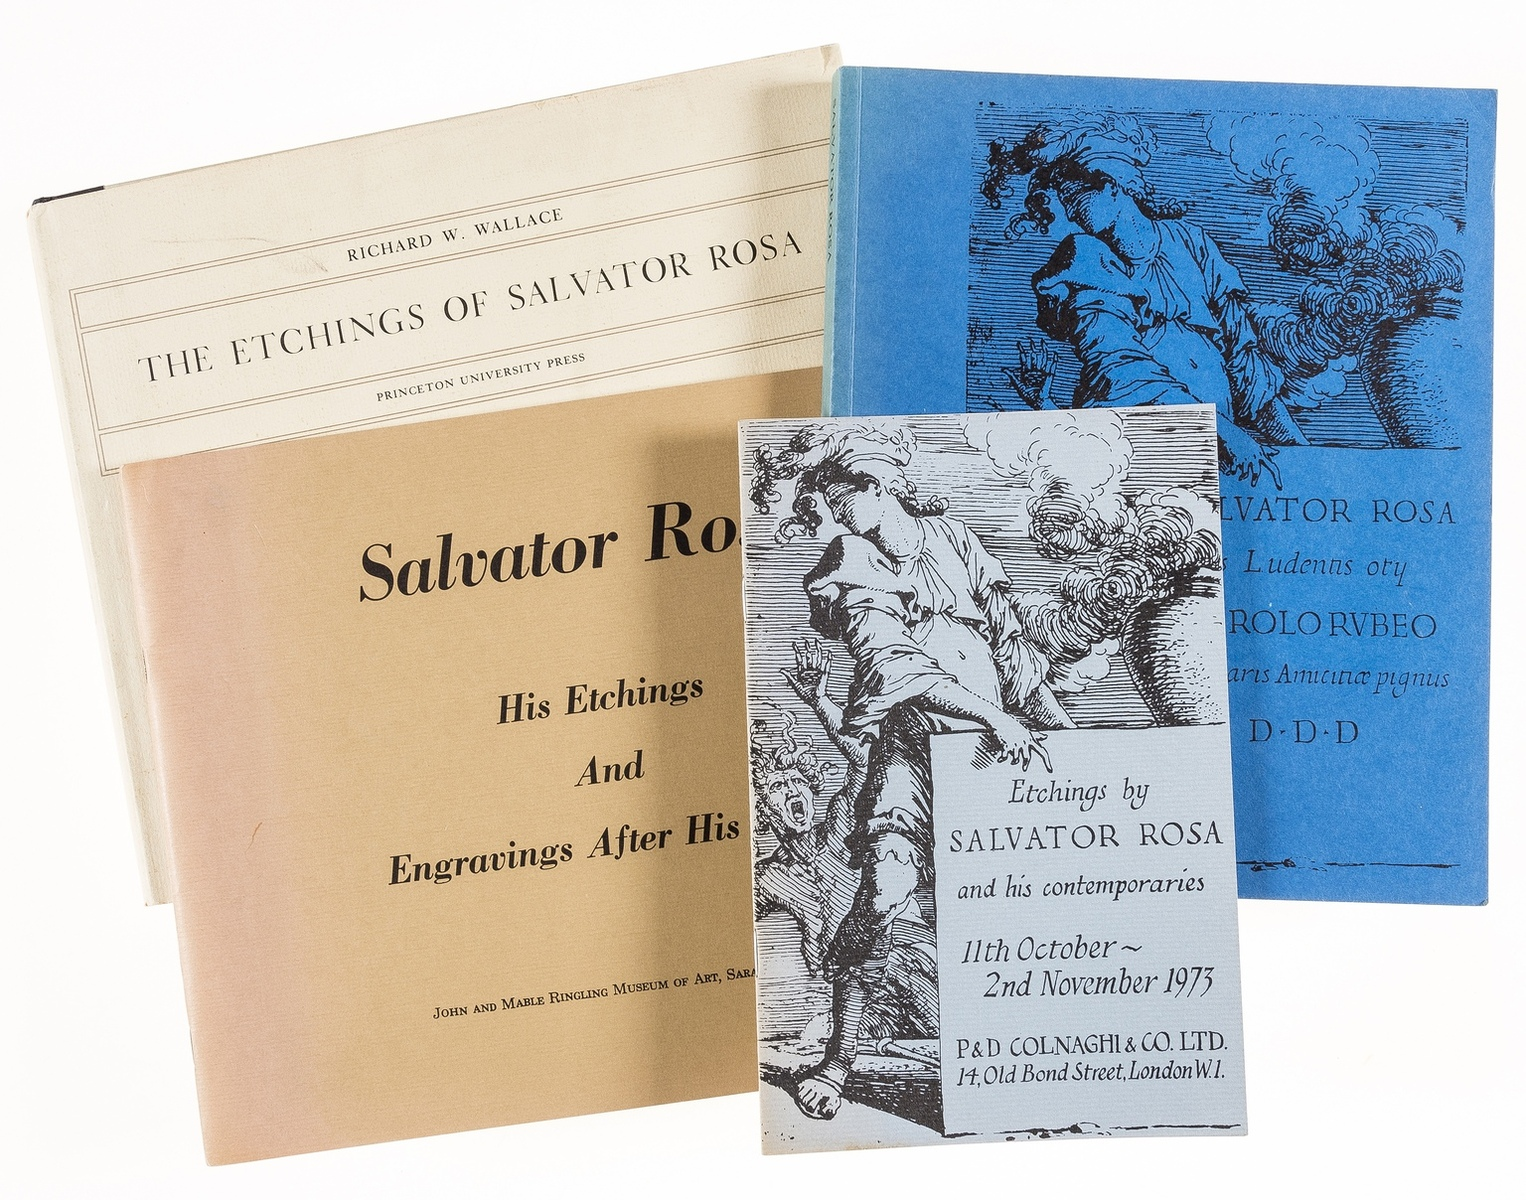 Wallace (Richard W.) The Etchings of Salvator Rosa, Princeton, NJ, 1979 & 3 catalogues on Rosa (4)